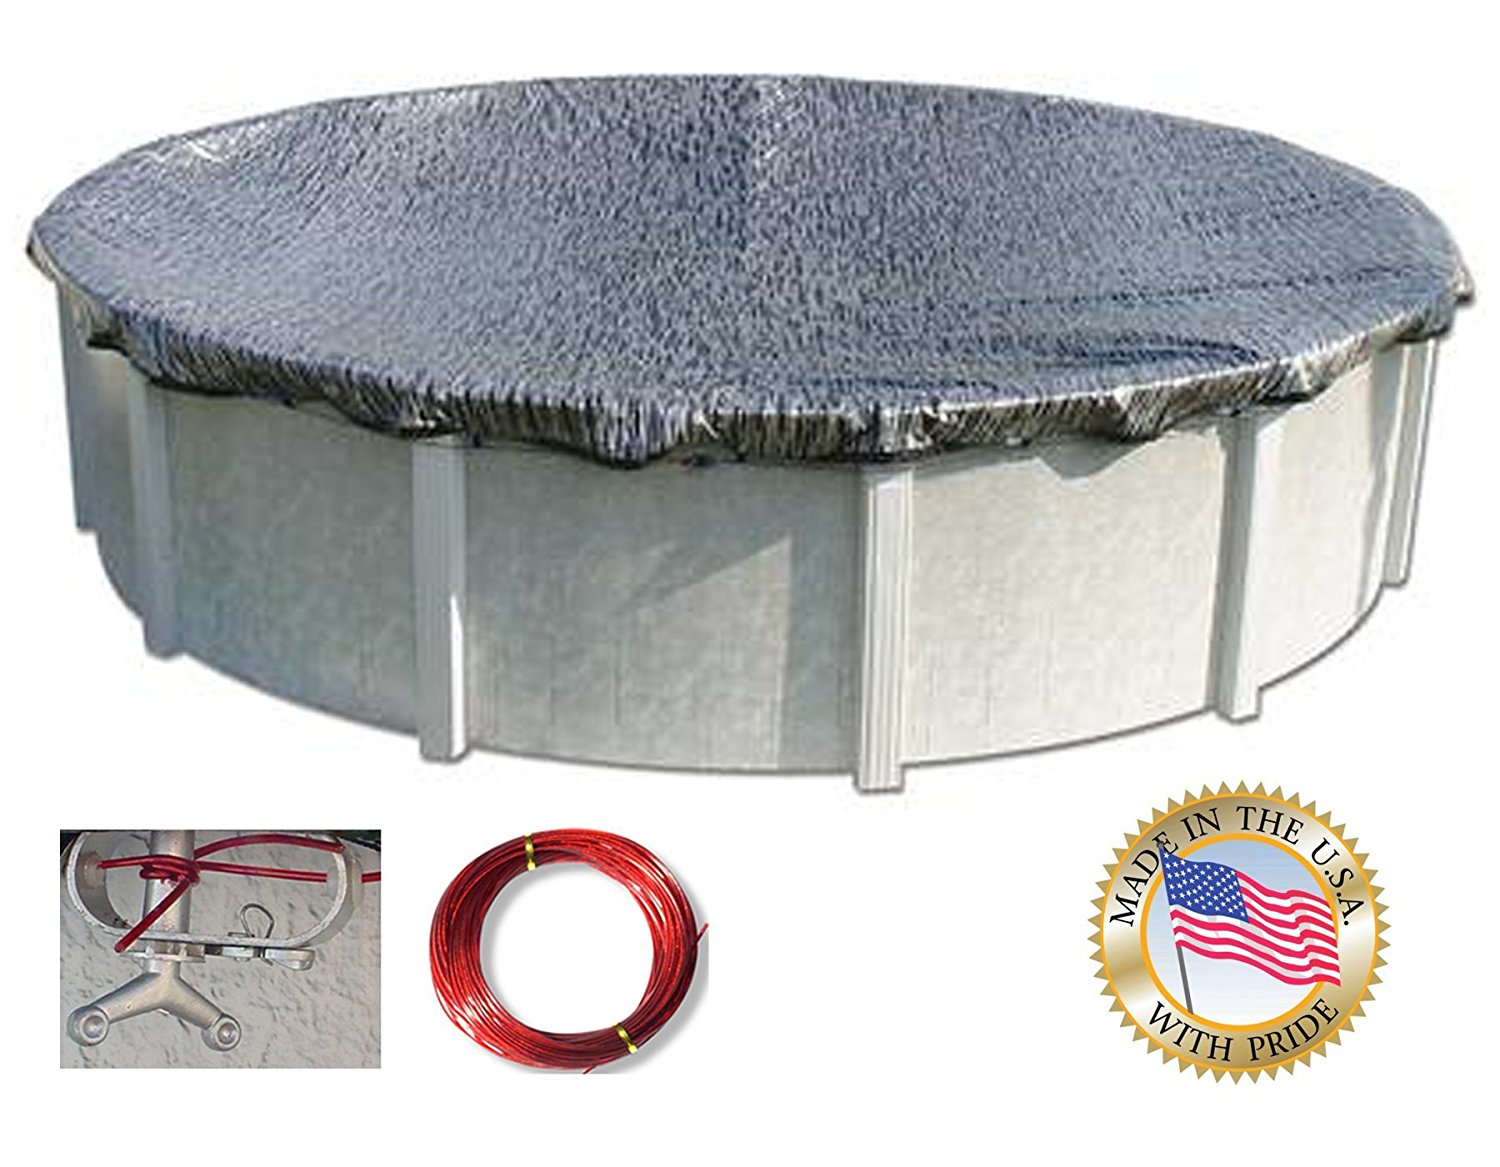 Above Ground Pool Winter Cover Hpi Enviro Mesh 24 Round Winter Cover For Above Ground Pools Gray